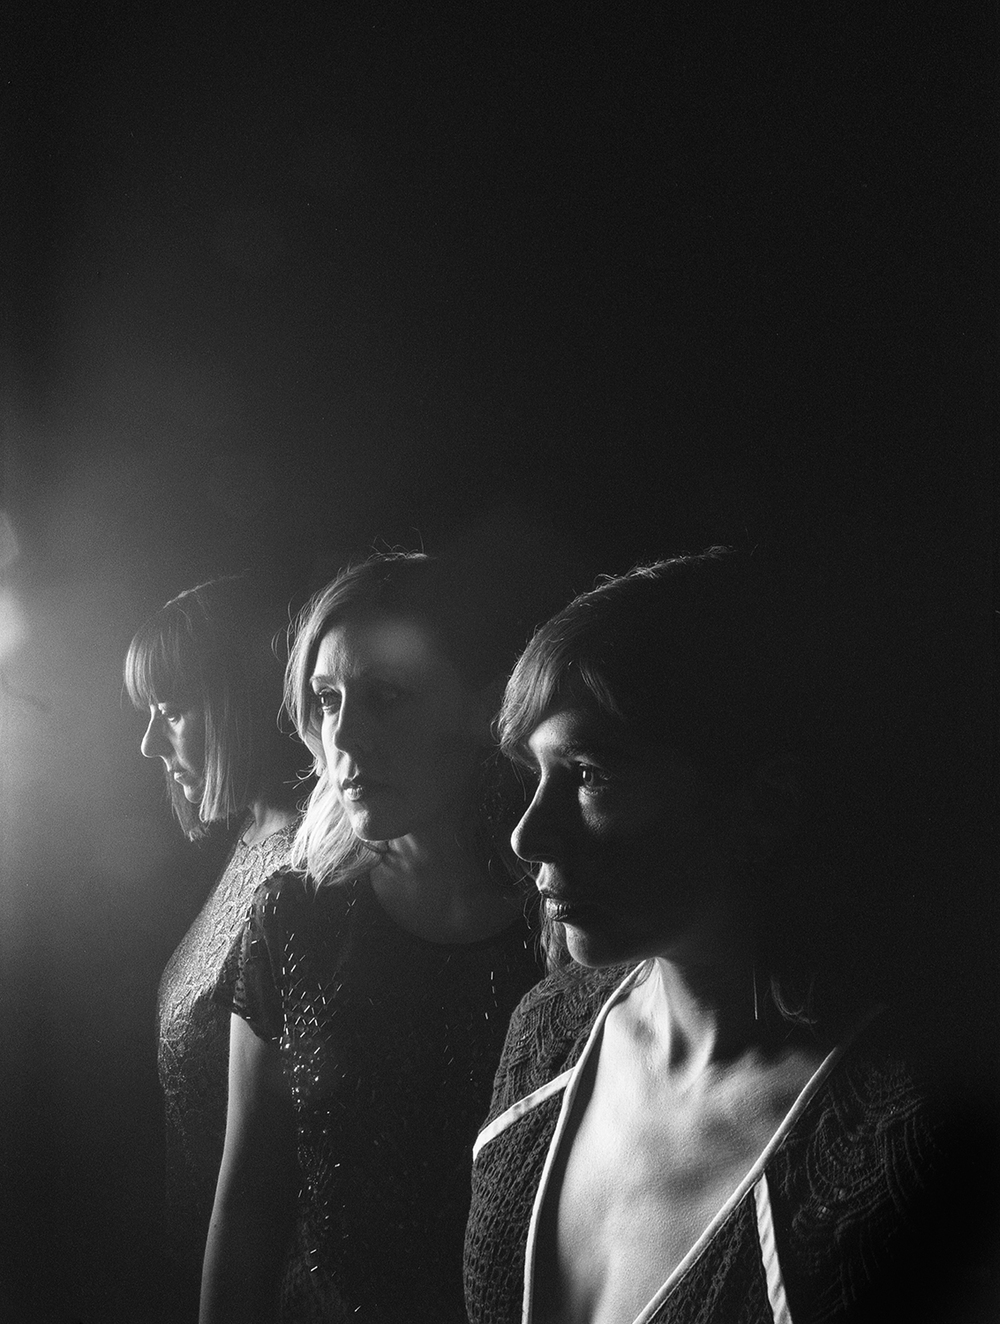 Sleater-Kinney by Ebru Yildiz for Pitchfork